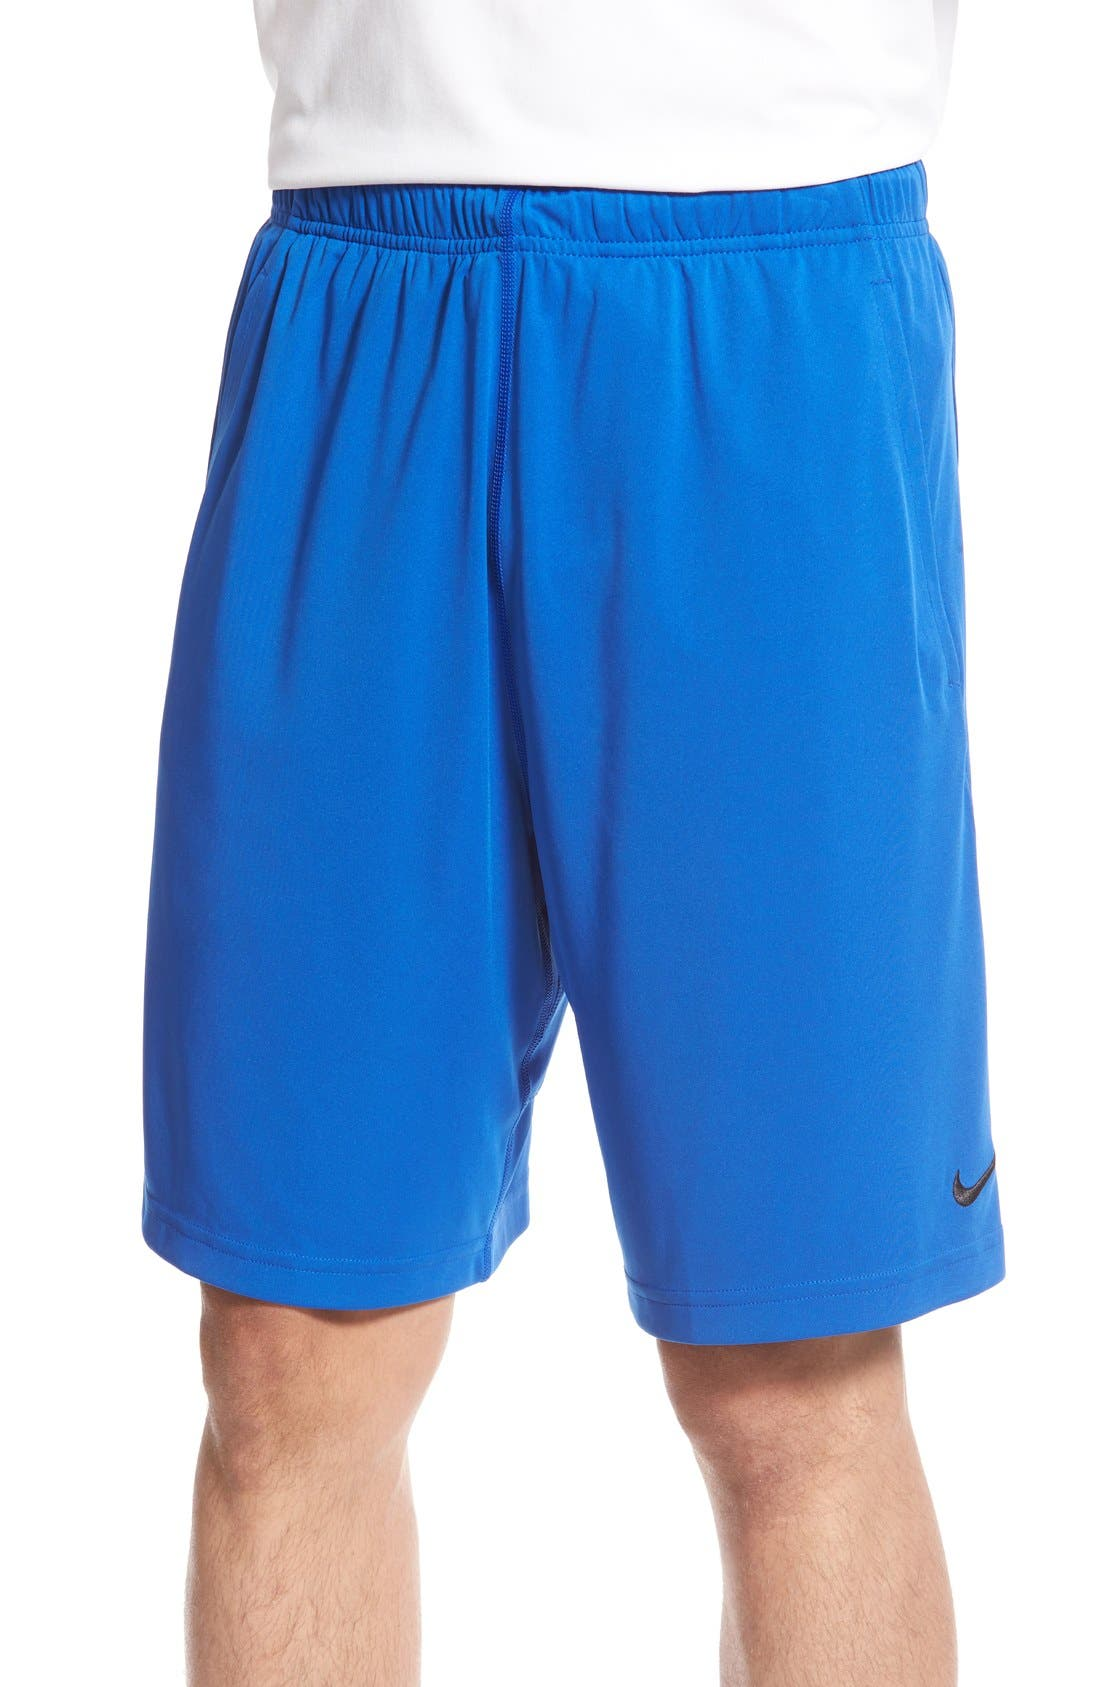 Nike 'Fly' Dri-FIT Training Shorts